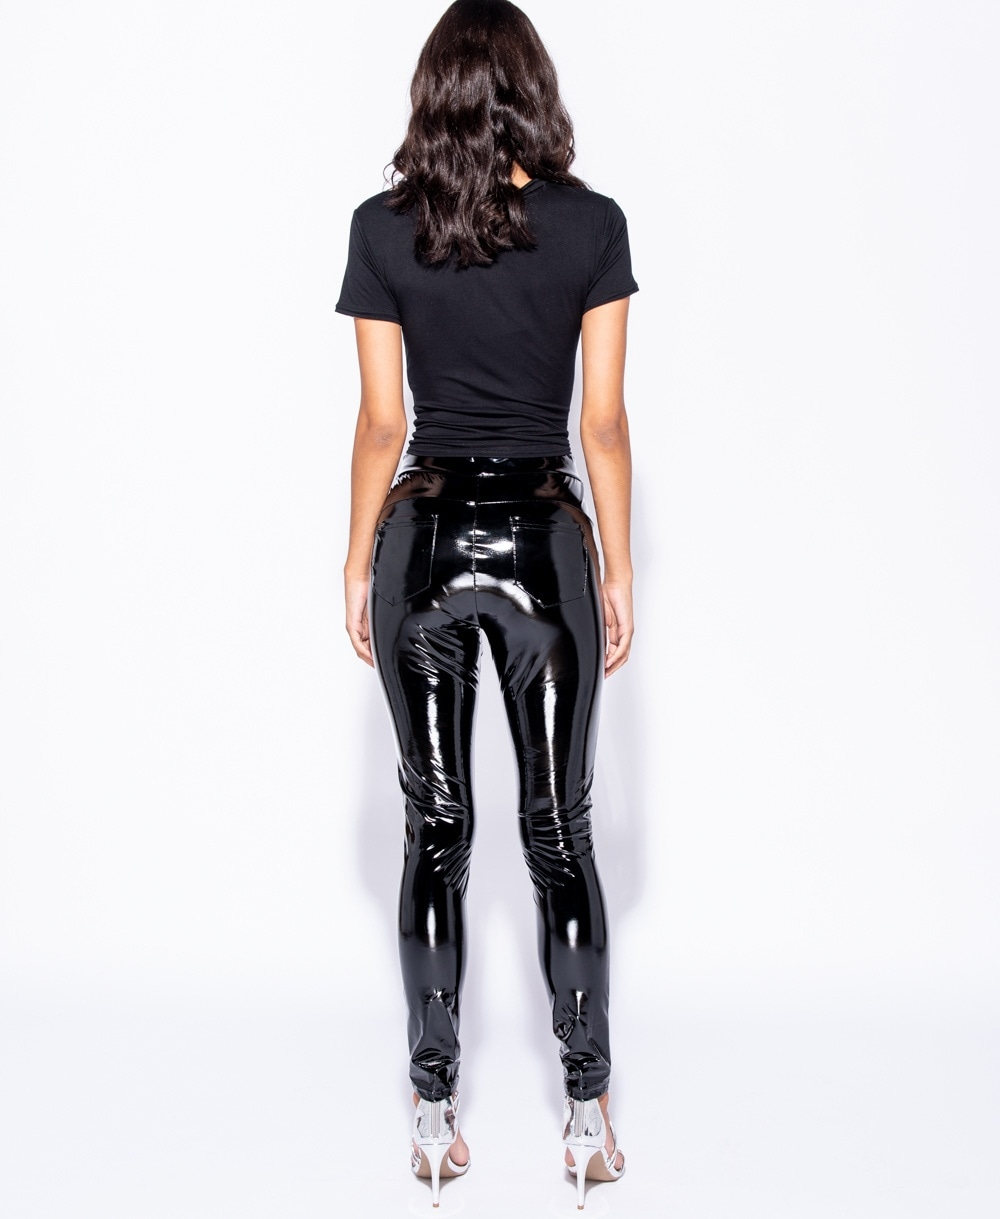 866685c13a1e8 High Shine Vinyl High Waisted Jegging Trousers - Clothing from ...